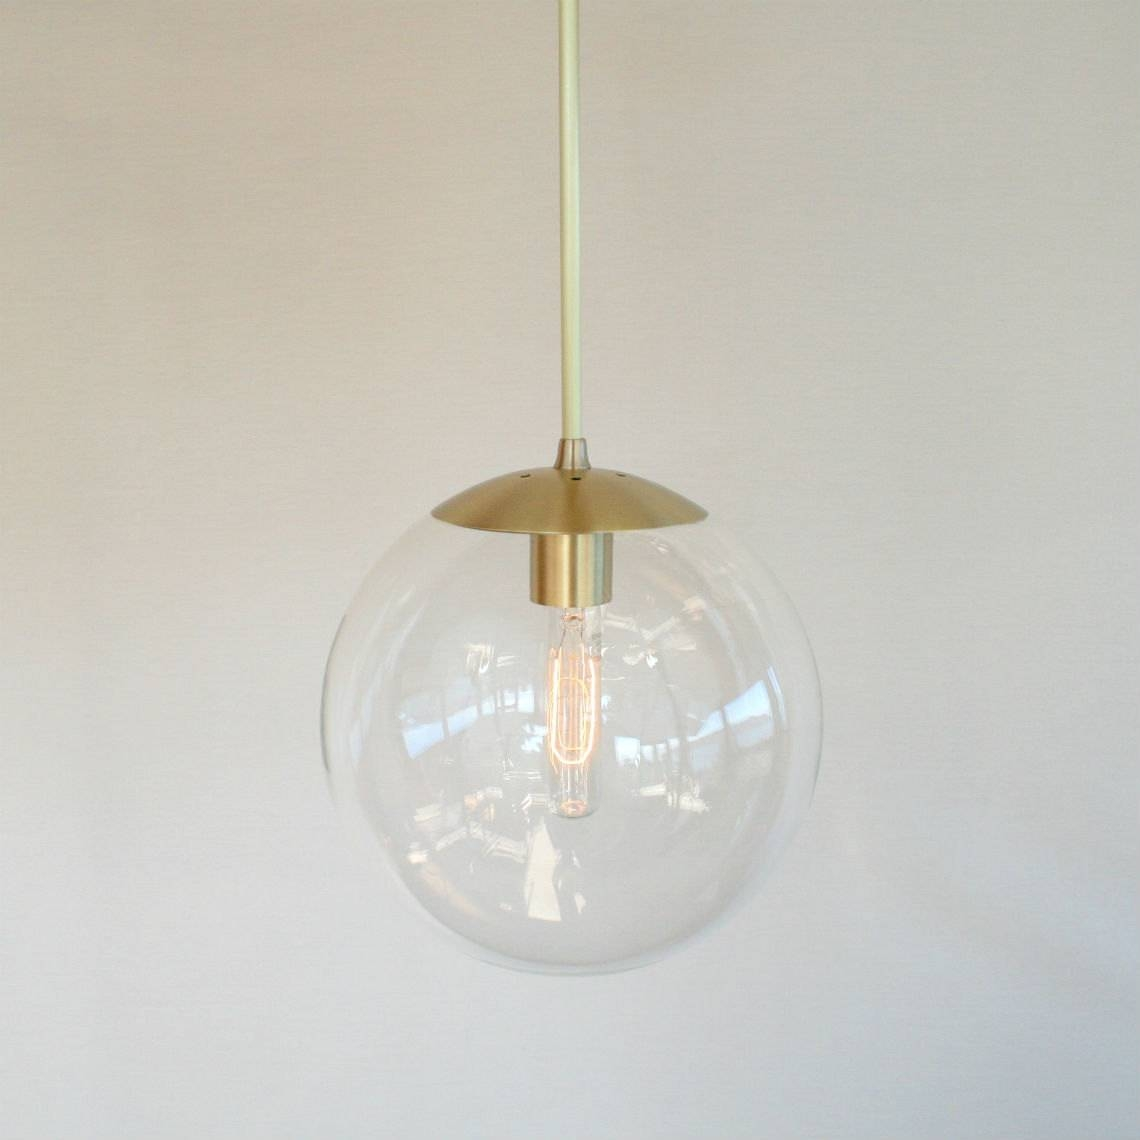 Clear Glass Globe Pendant Light - Baby-Exit pertaining to Clear Glass Ball Pendant Lights (Image 1 of 15)